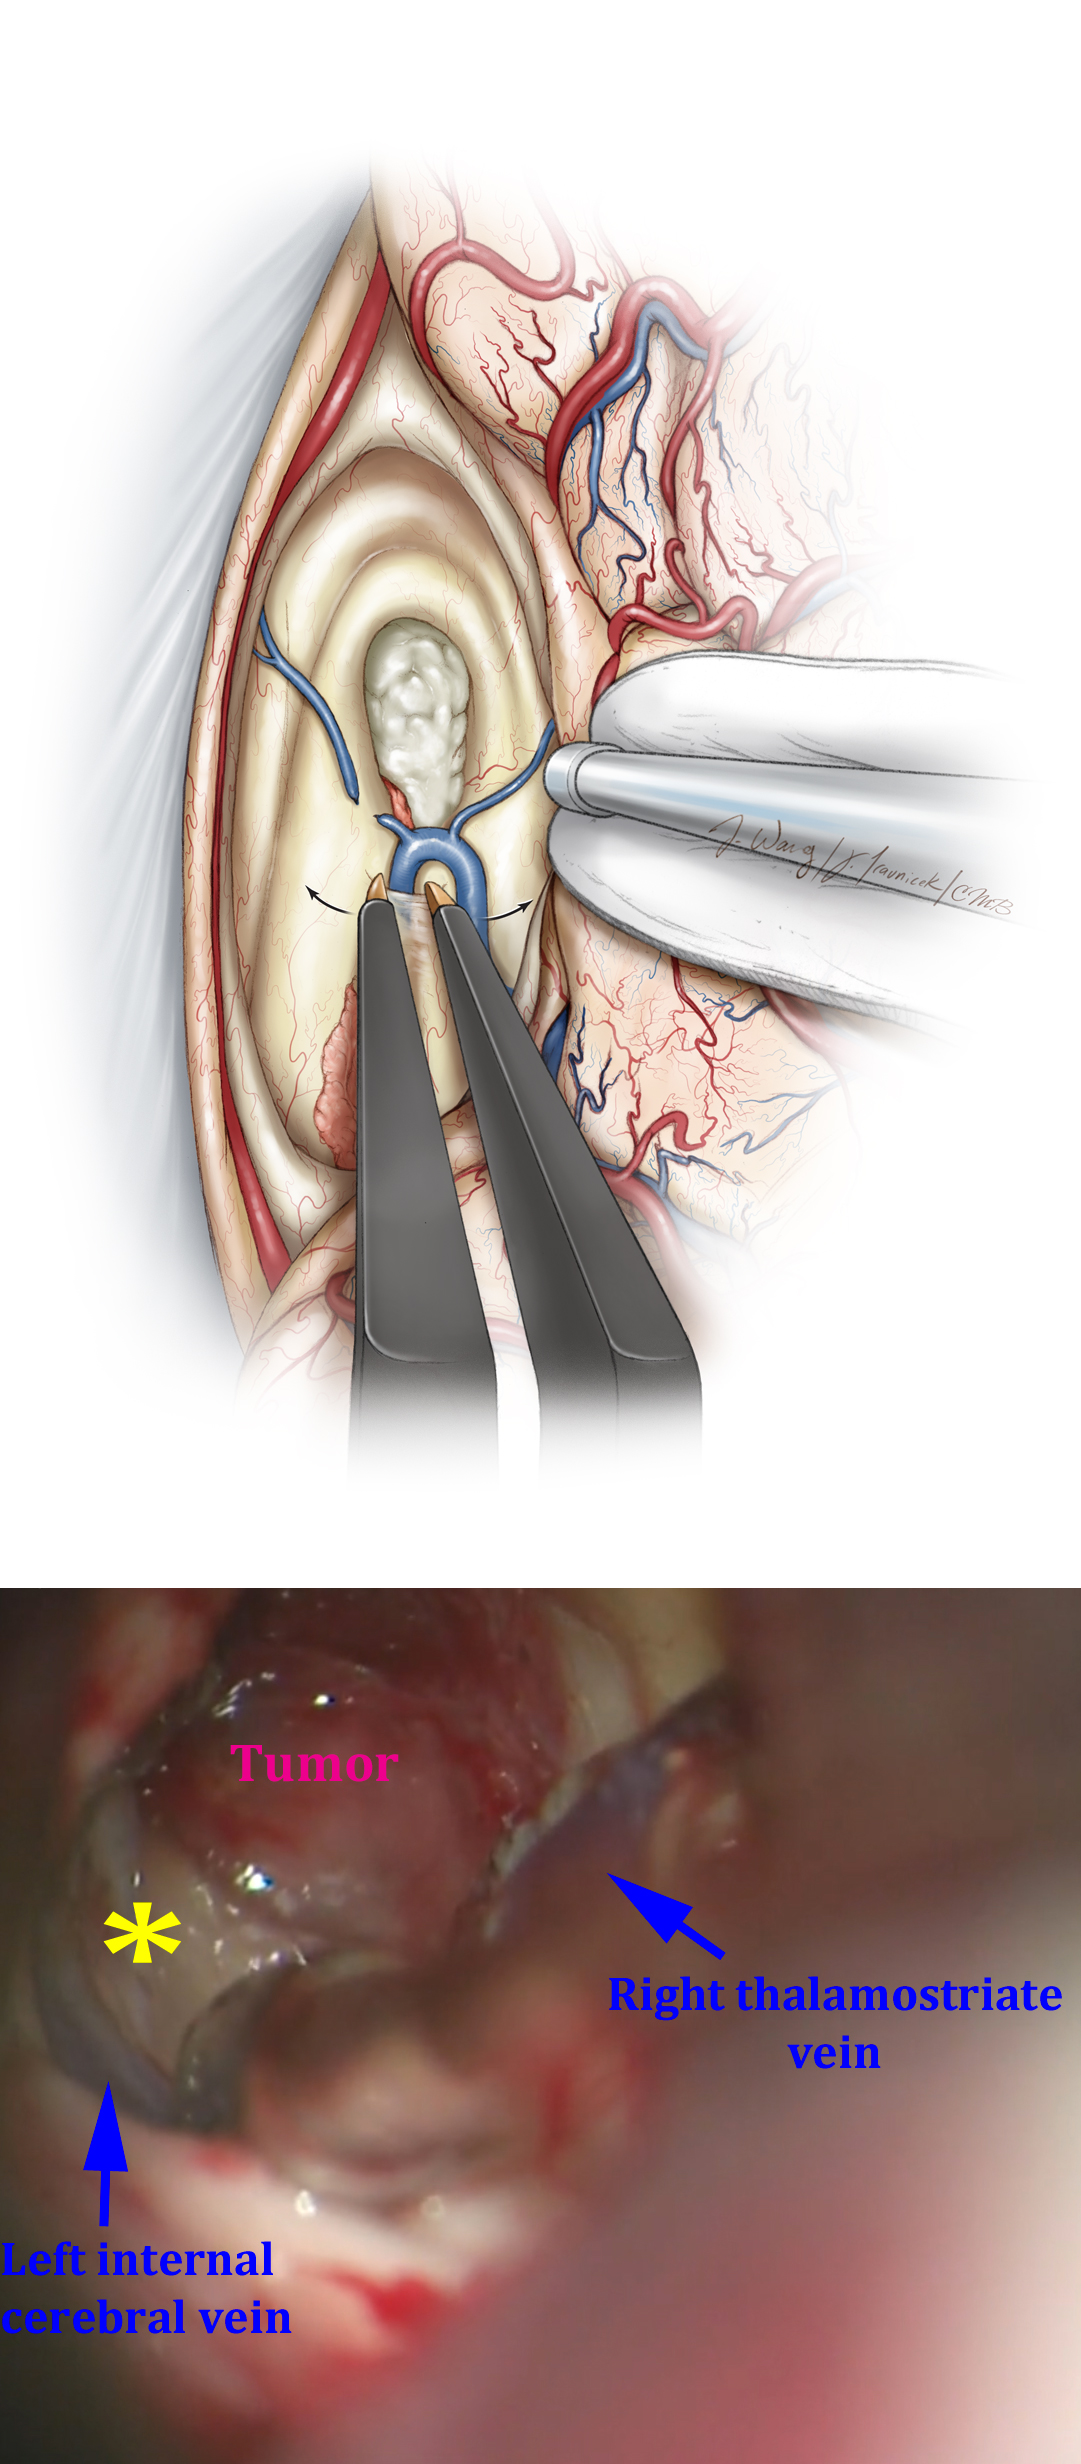 Figure 12: The transection of the anterior septal vein and transchoroidal dissection posterior to the thalamostriate vein provides excellent exposure of the anterior and middle portions of the third ventricle and the tumor. After the anterior septal vein is coagulated and sharply cut, the fornix is gently mobilized medially. There is usually a small section of ependyma between the posterior edge of the foramen and the anterior margin of the ipsilateral thalamostriate vein. This ependyma can be dissected open with micro dissectors and by gentle spreading the bipolar forceps (upper image). Collectively, these maneuvers significantly expand the foramen, facilitating improved visualization through the third ventricle (lower intraoperative photo). The left third ventricular wall is marked with *.